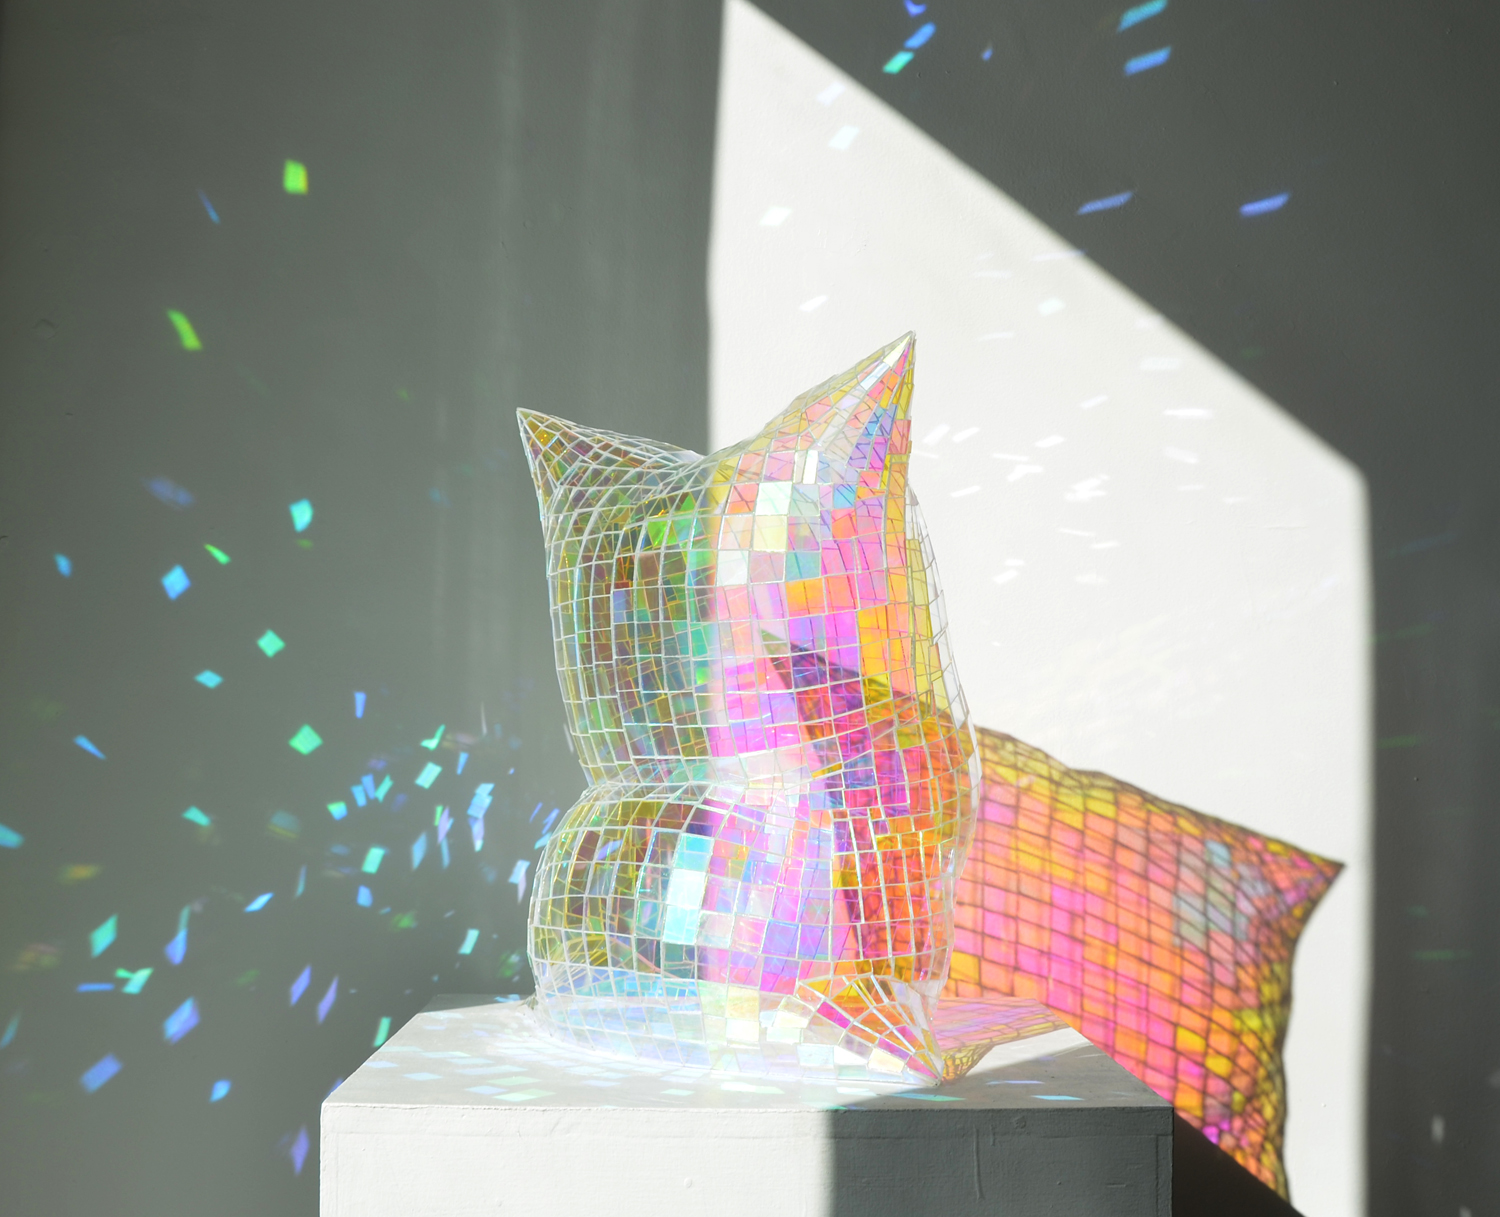 Item 193 - Roberts, Holograph Pillow